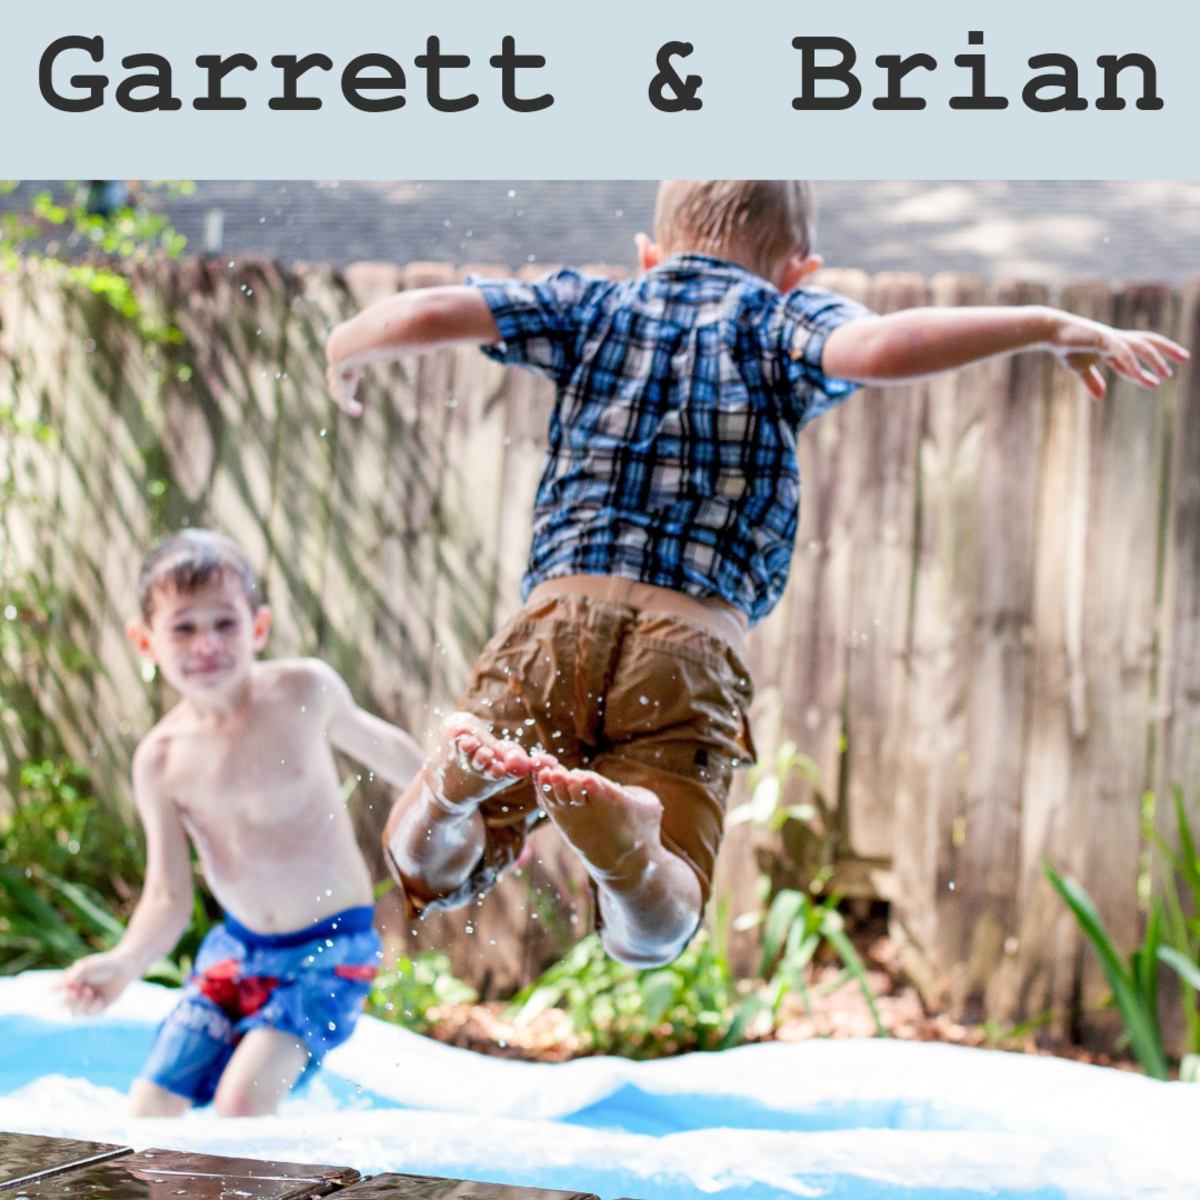 Garrett and Brian